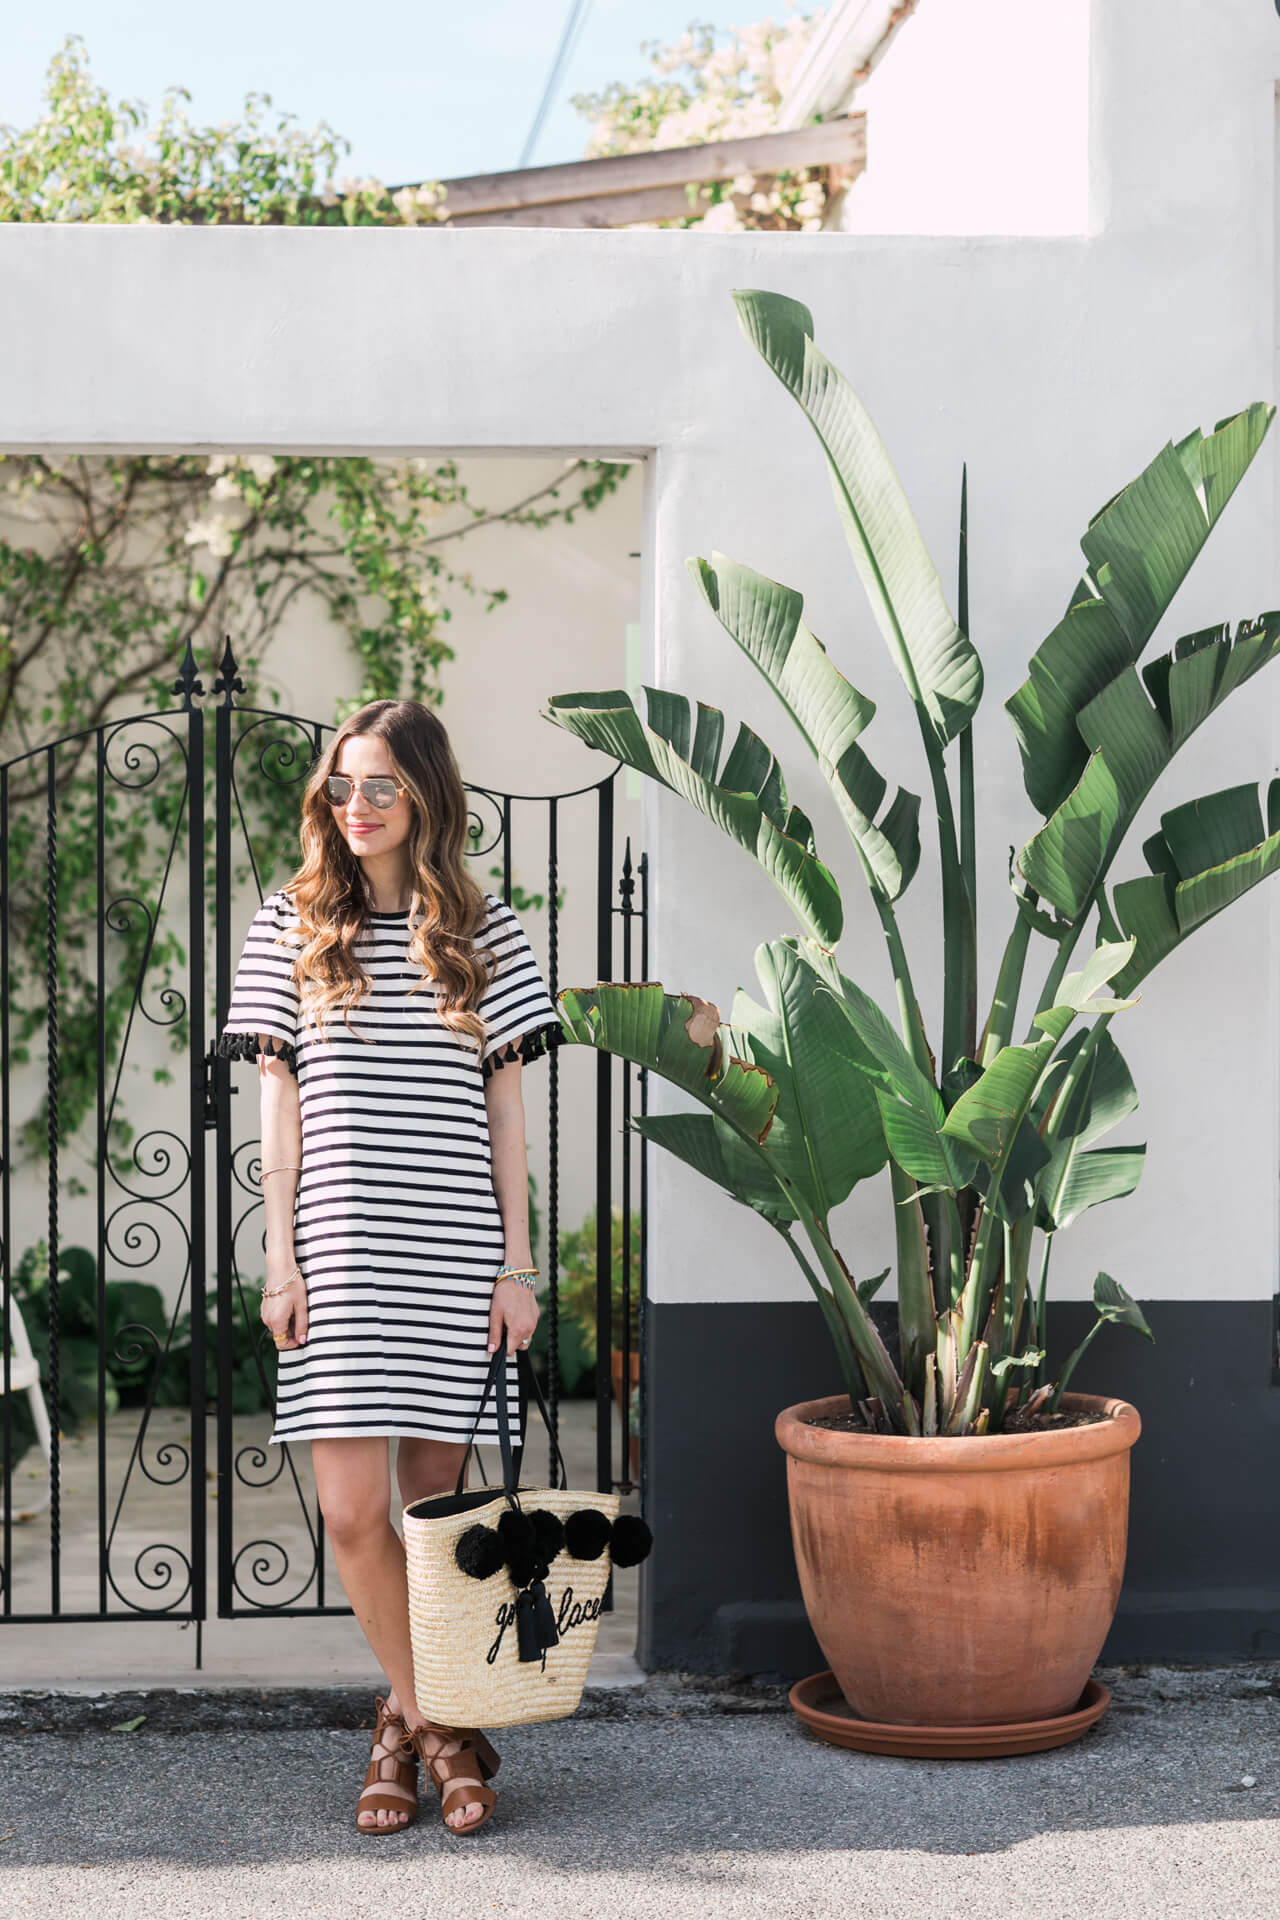 cute casual outfit inspiration for spring or summer - striped dress and brown sandal heels